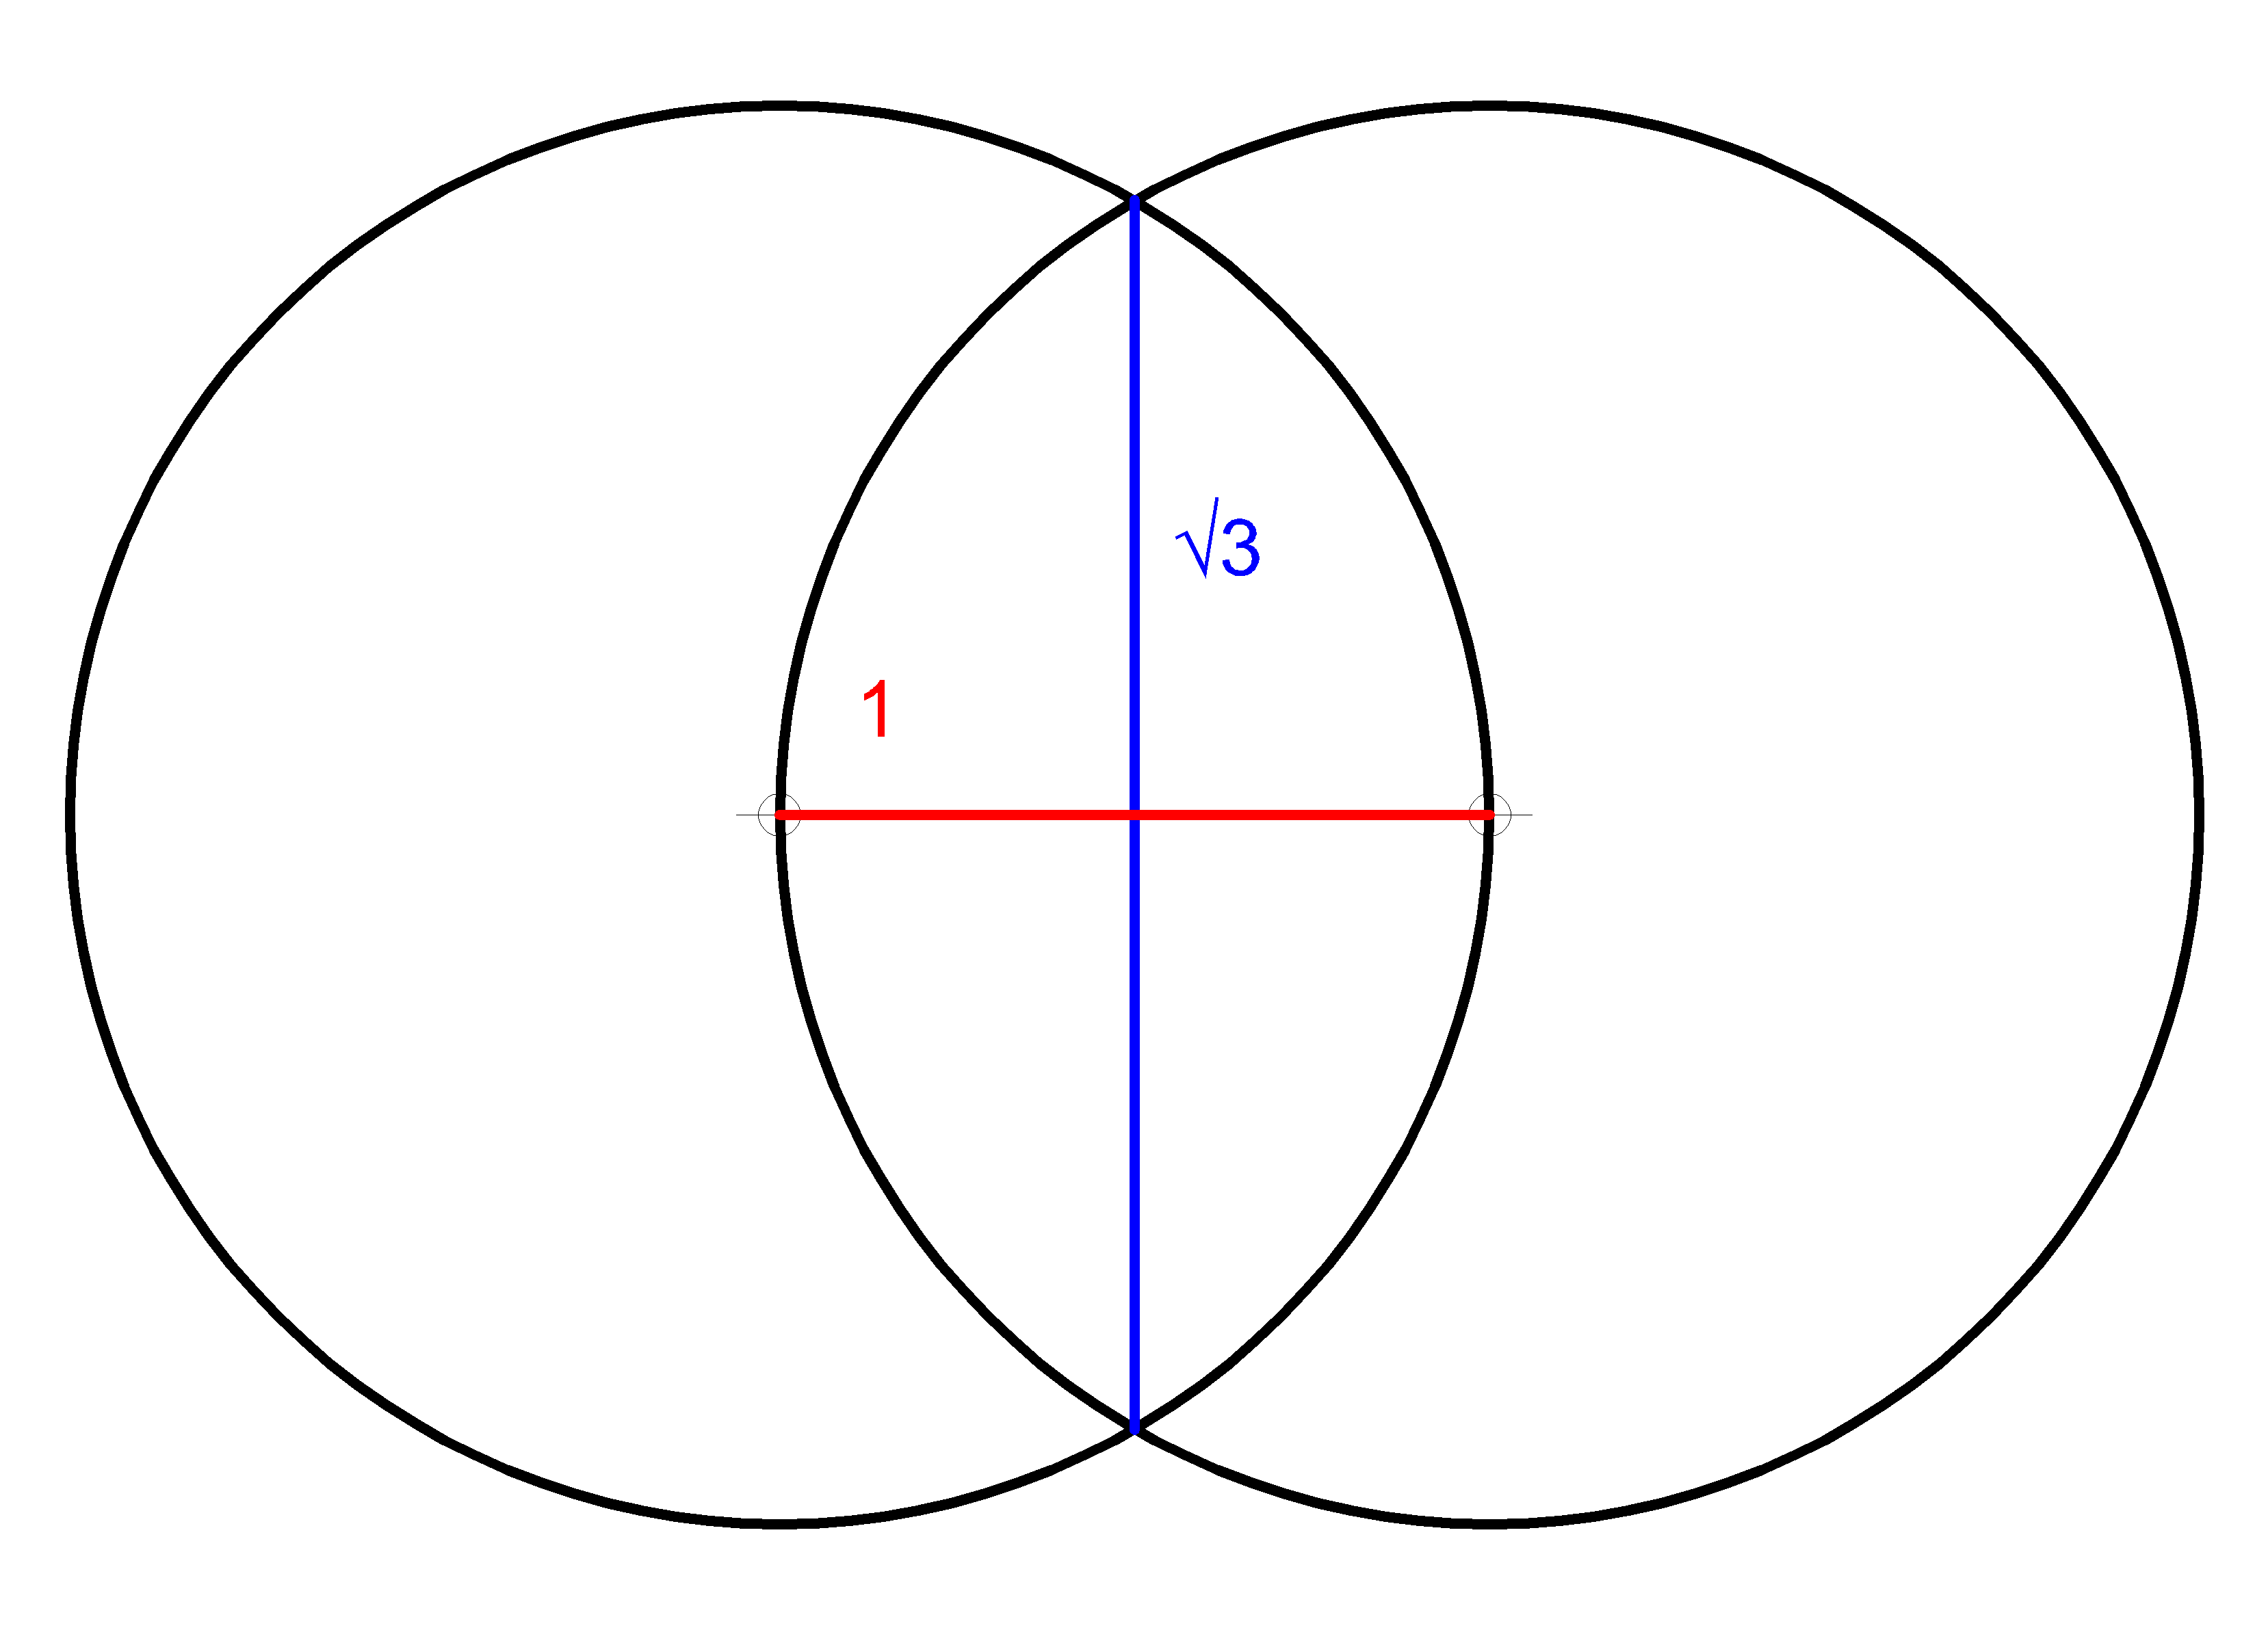 Vesica Piscis and square root from 3